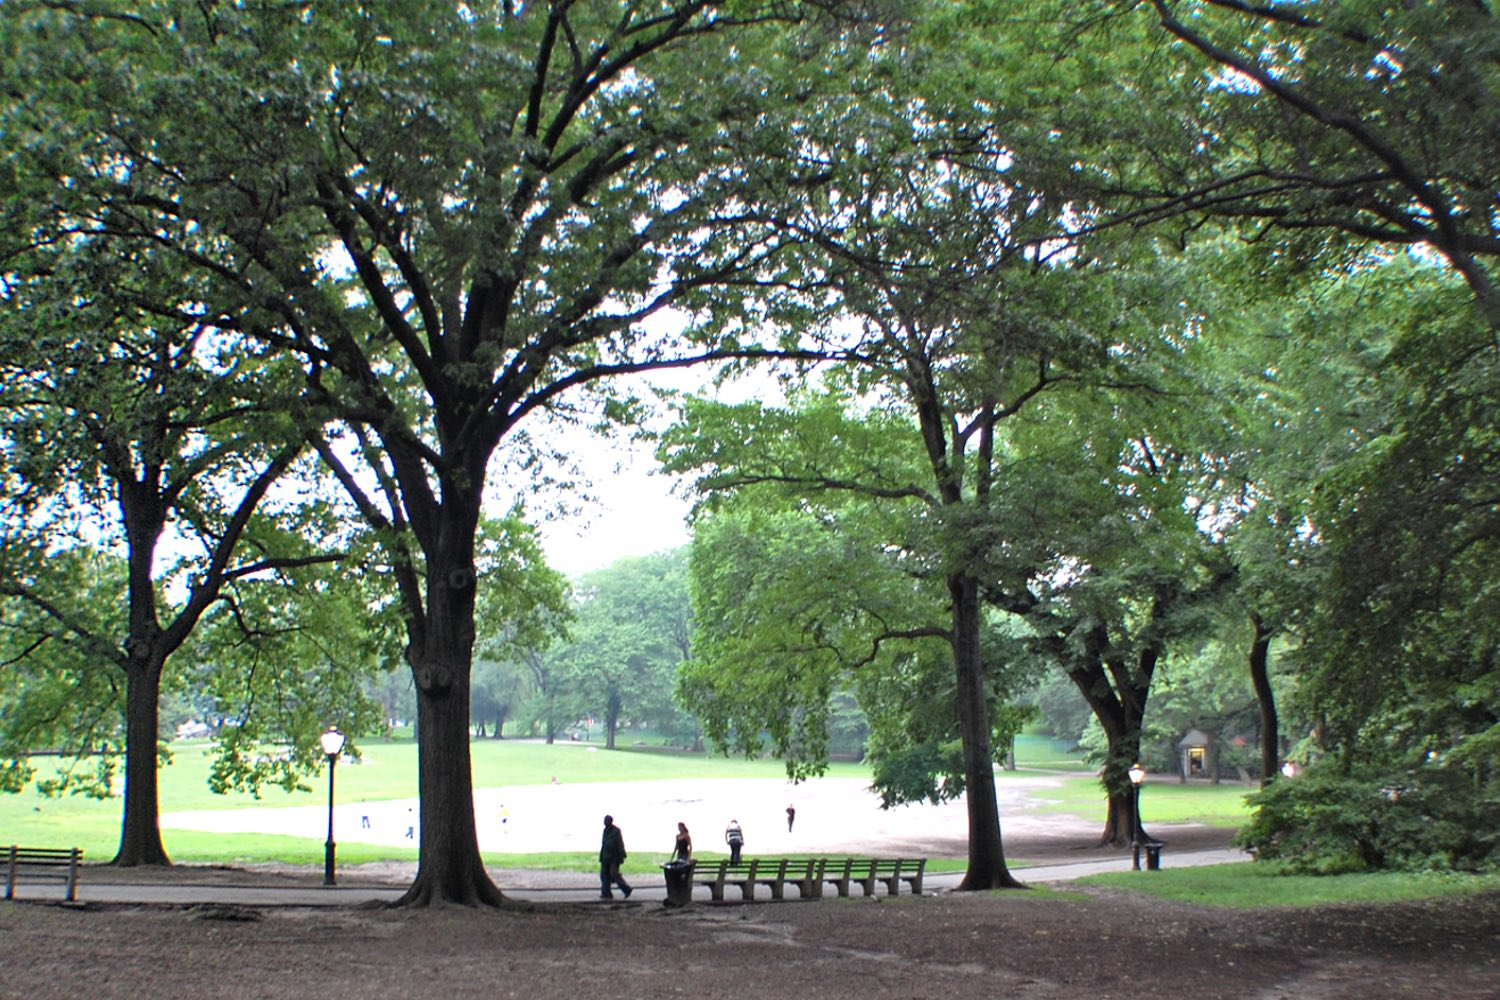 famous-landmarks-tv-shows-movies-nyc-character-32-c32-new-york-manhattan-travel-central-park